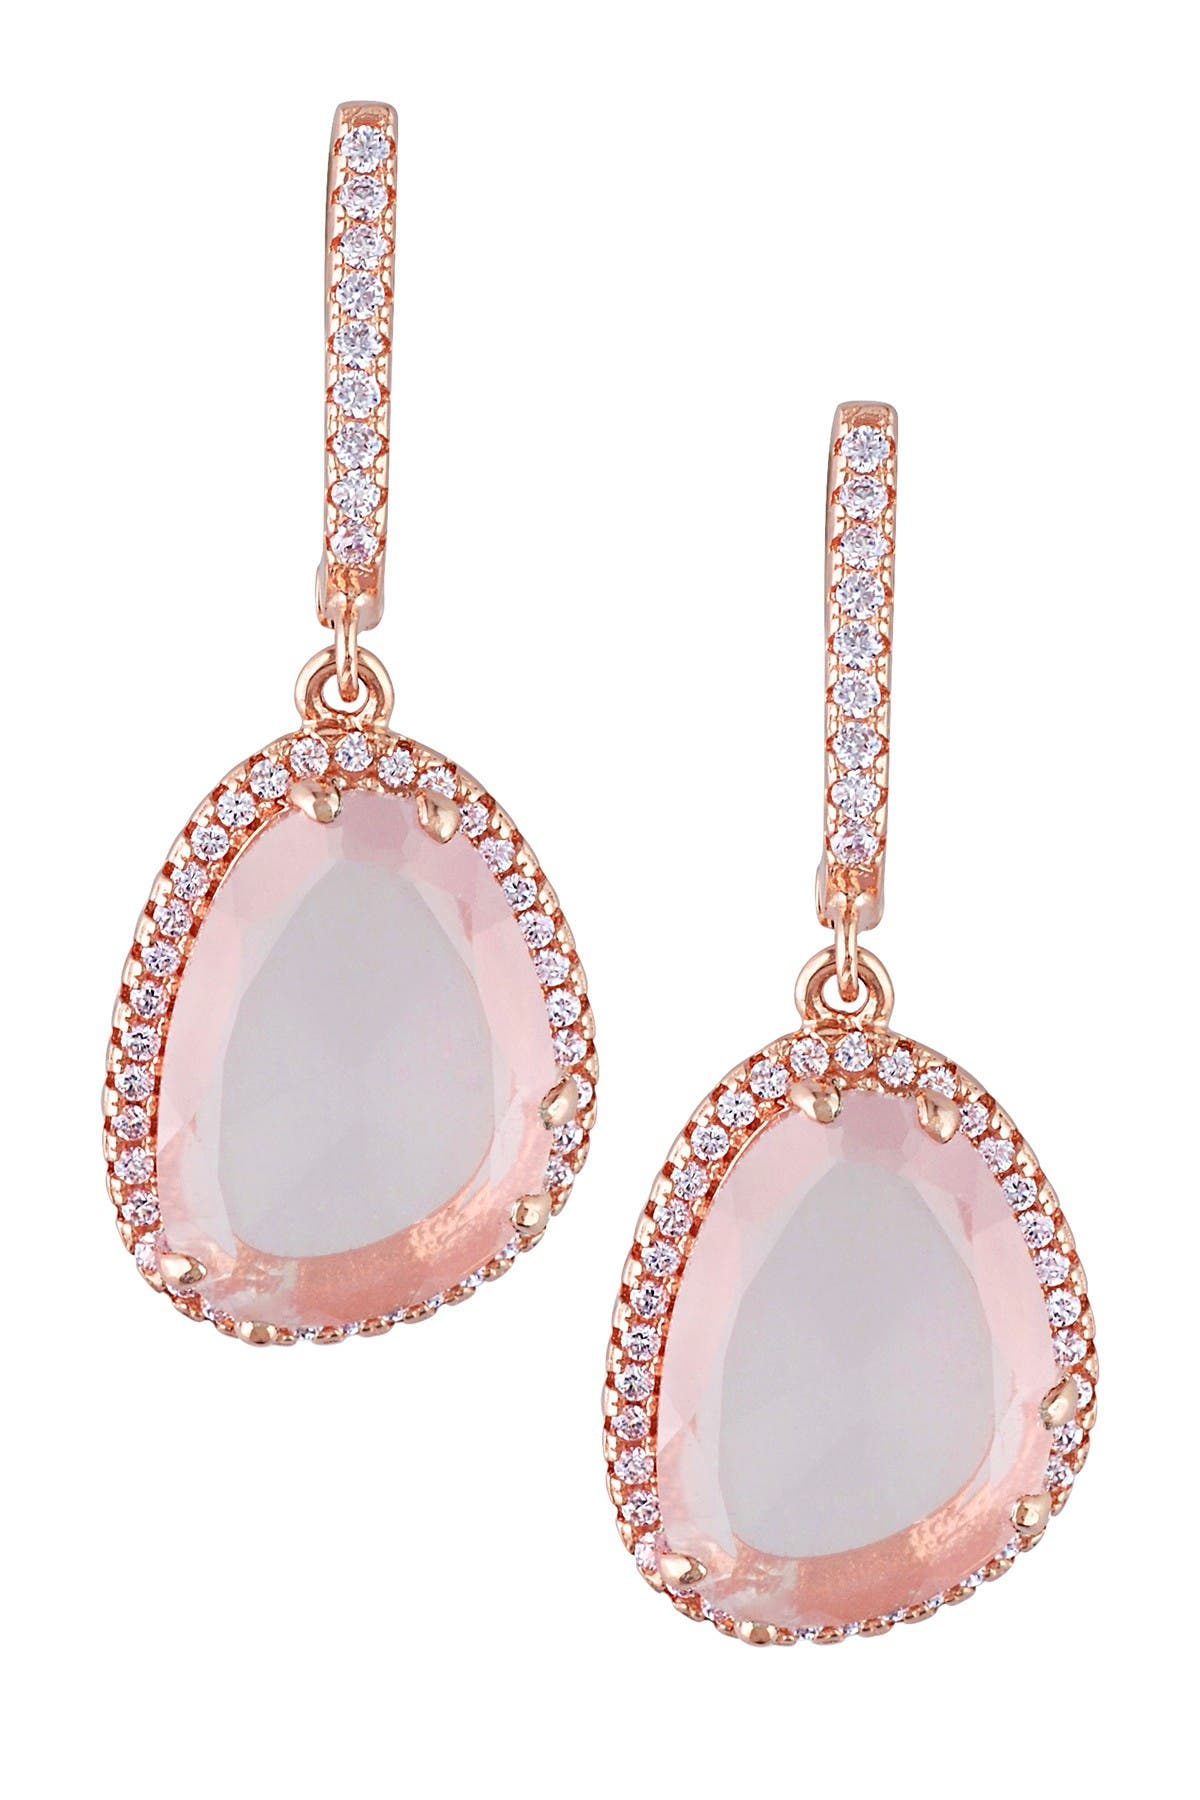 Image of Delmar Rose Quartz & White Topaz Dangle Earrings